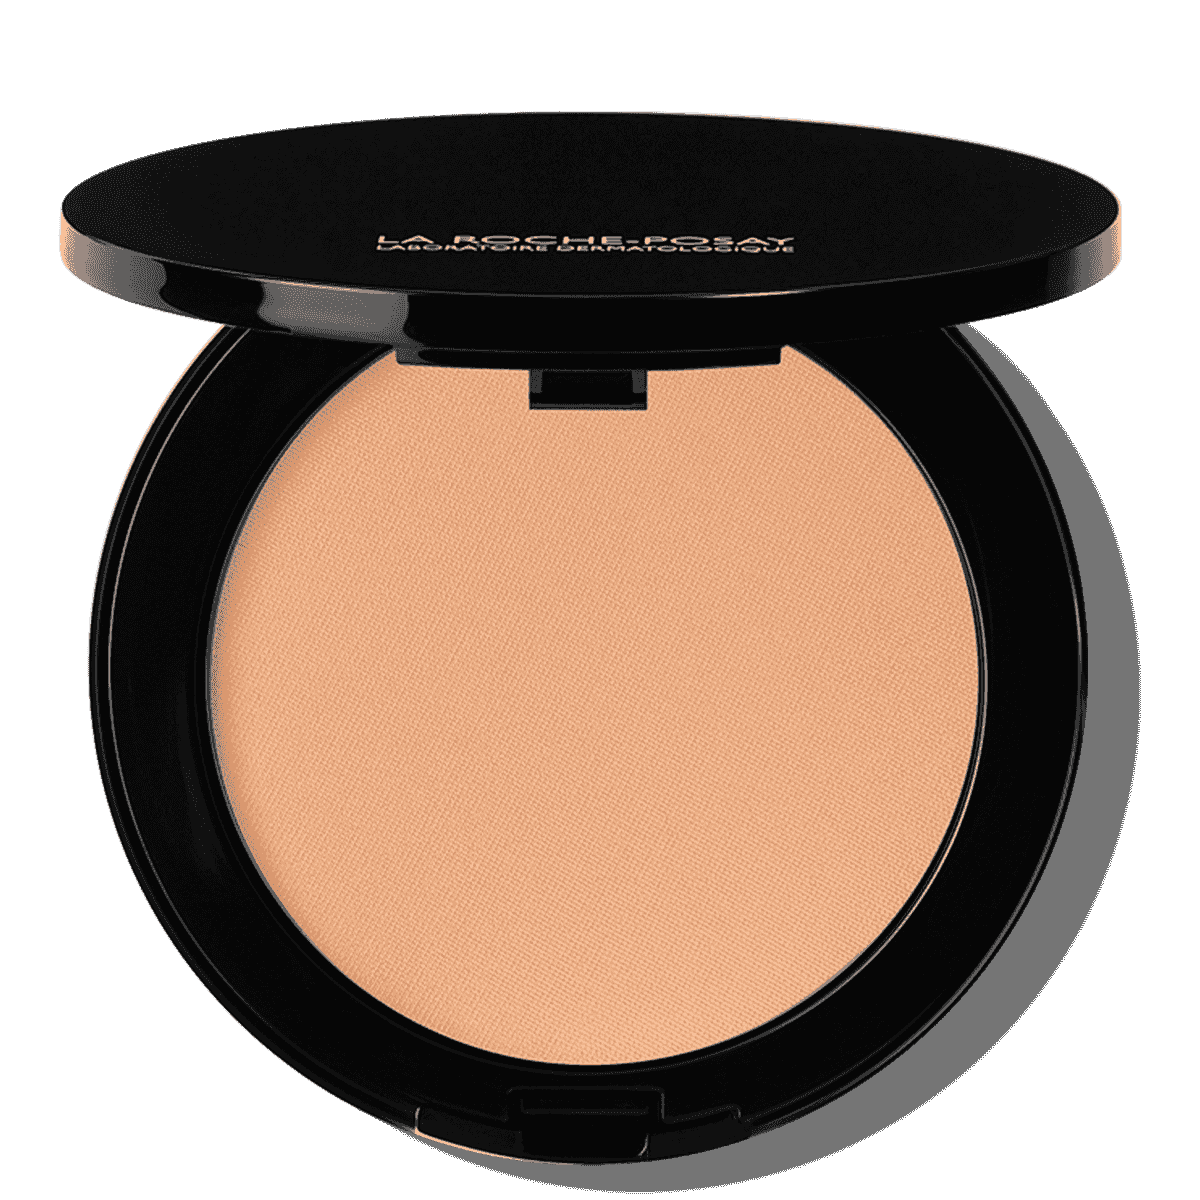 La Roche Posay Sensitive Toleriane Make up COMPACT_POWDER_13SandBeige